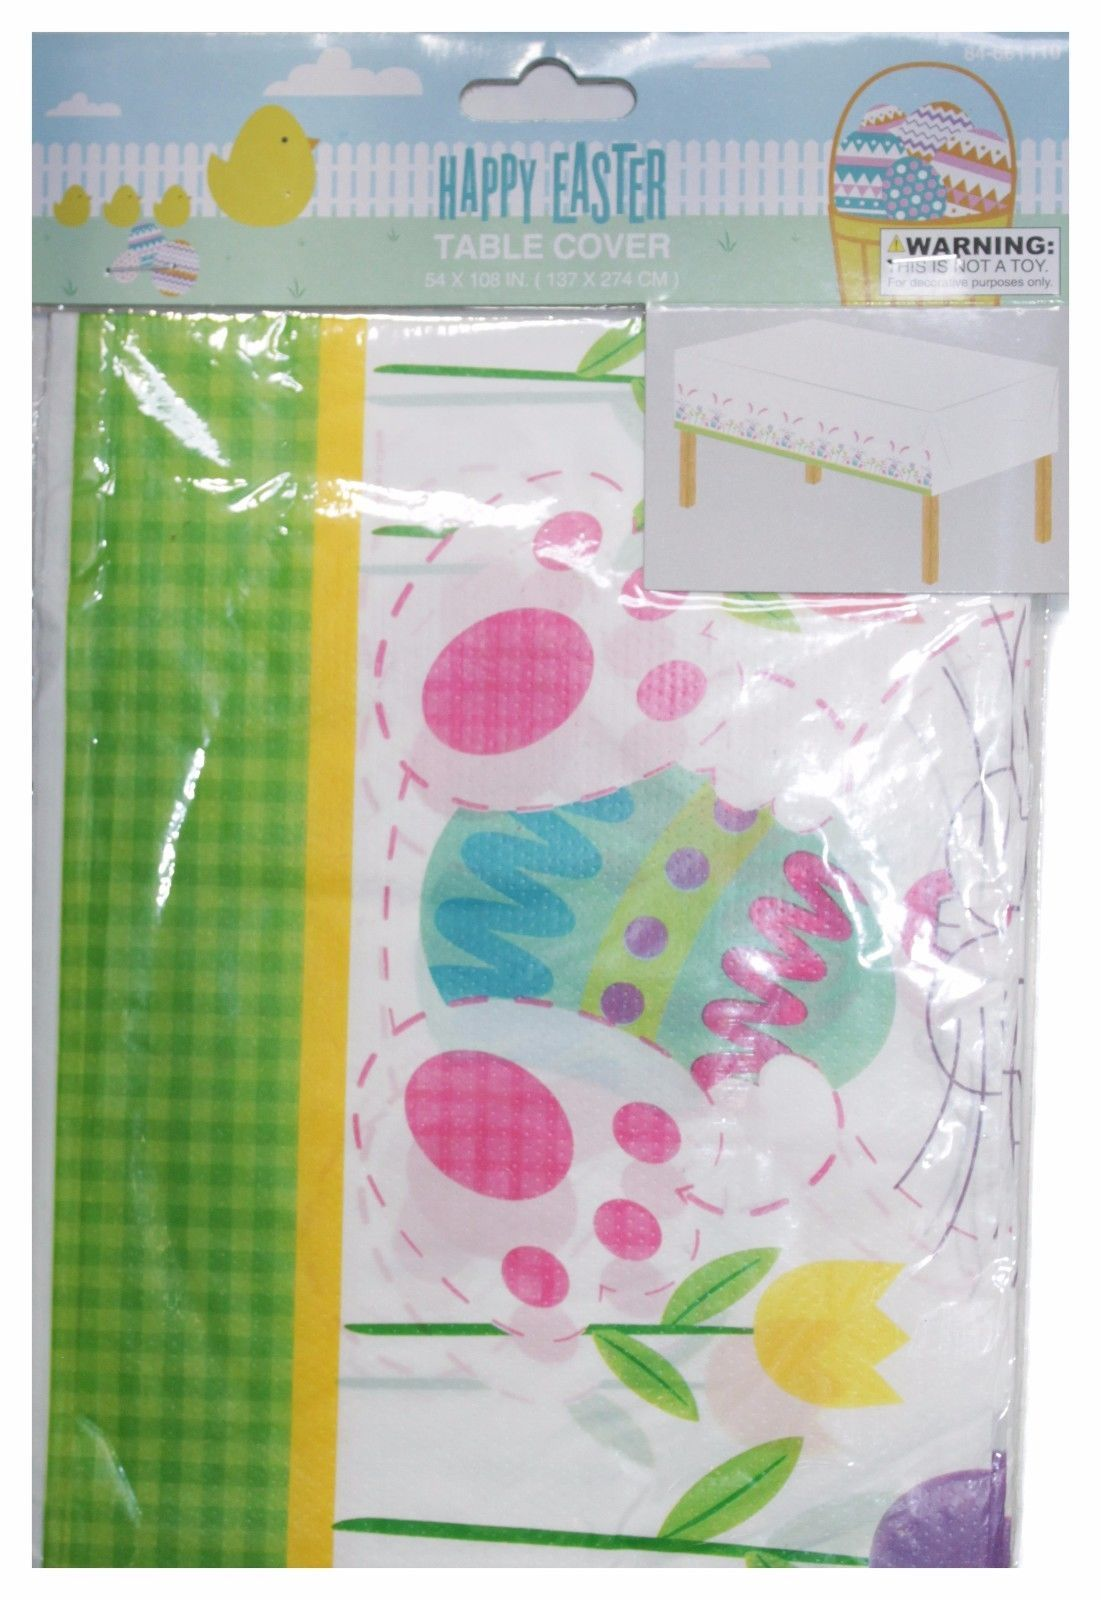 MOMENTUM BRANDS Party Supplies TABLE COVER White+Green+Yellow+Pink EASTER Decor